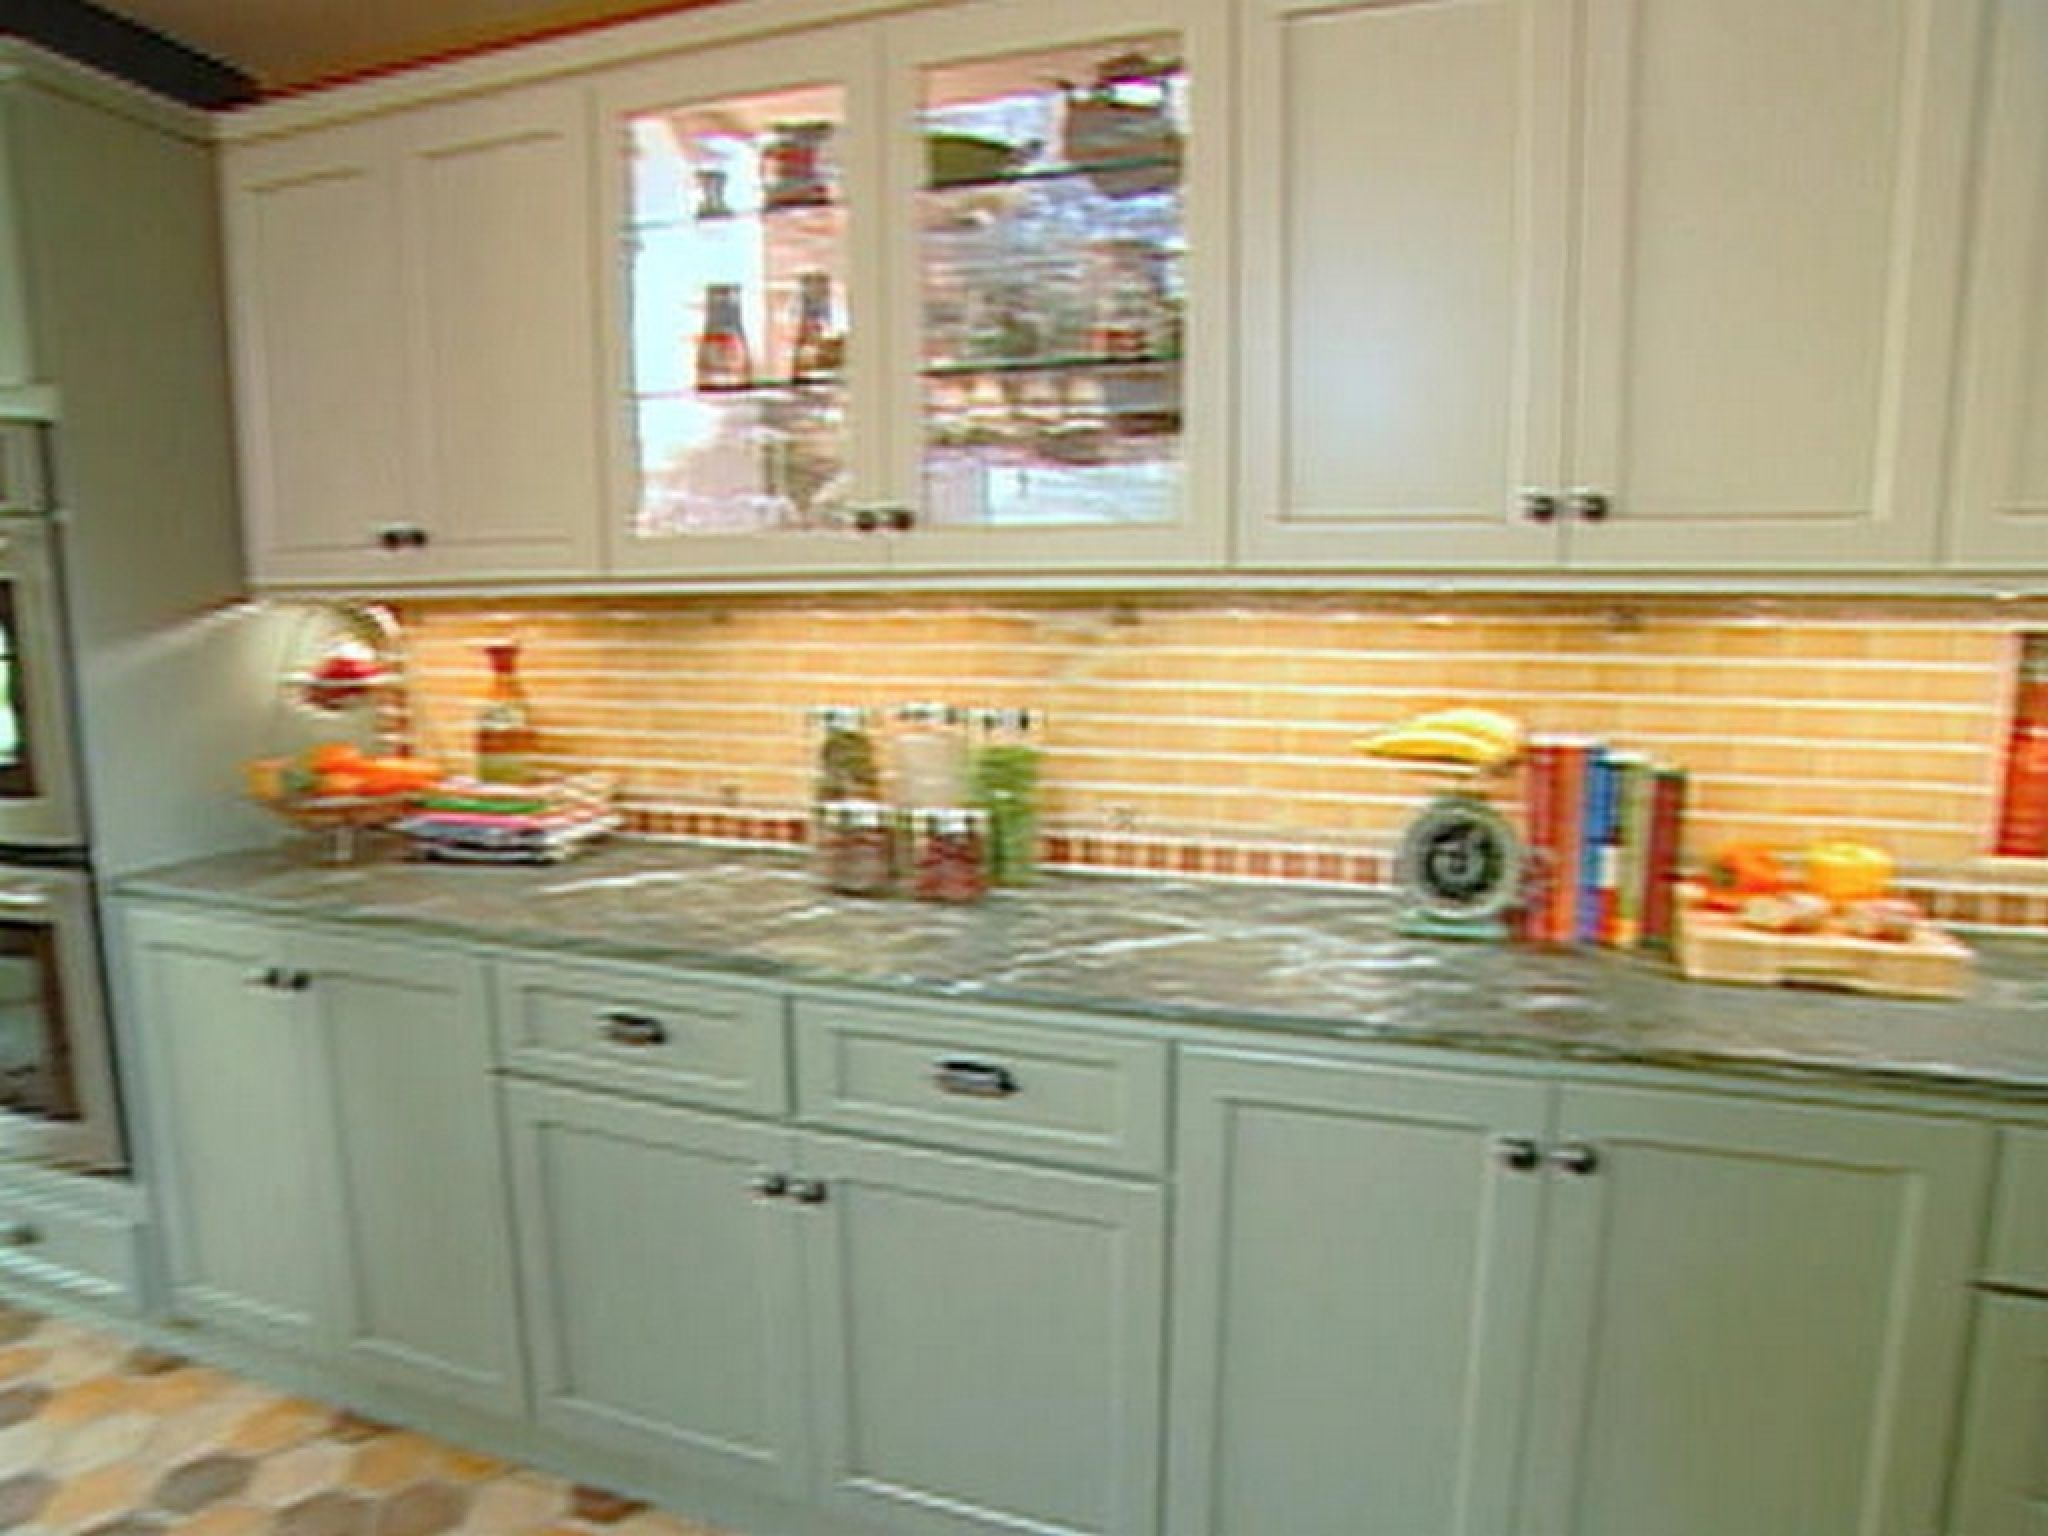 kitchen cabinets in spanish country kitchen ideas on a bud